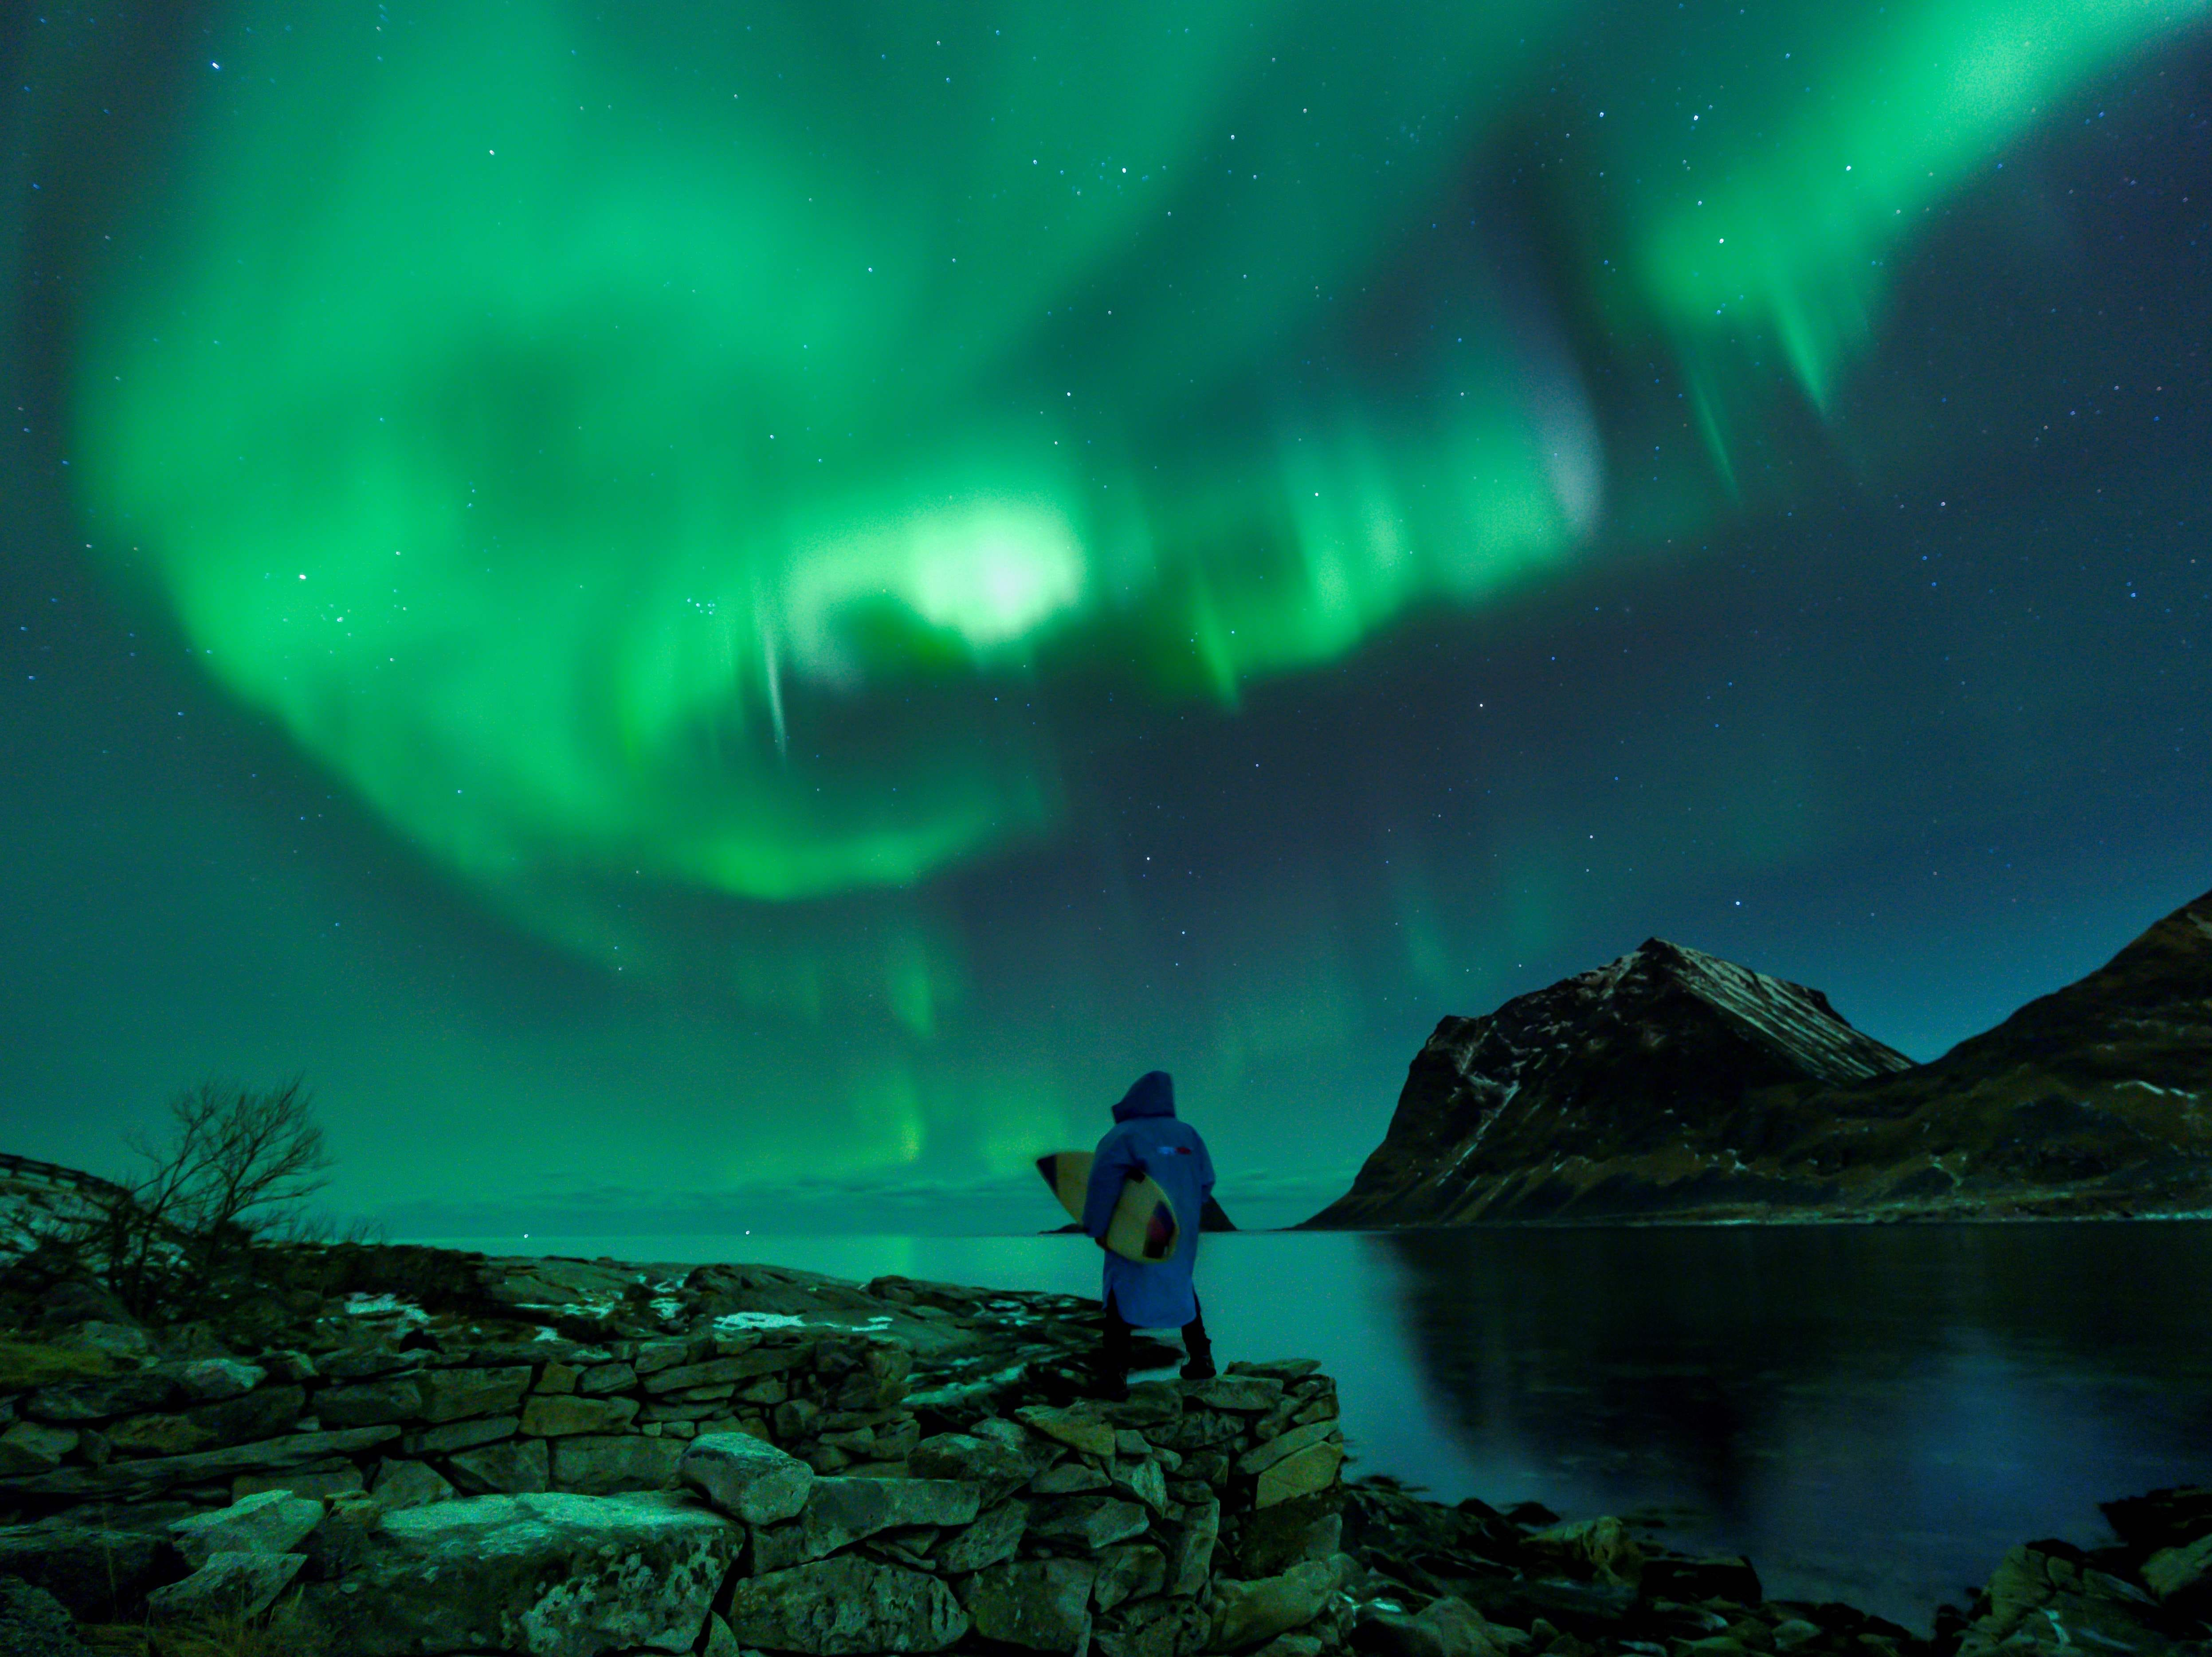 March 9, 2018: A surfer looks at Northern Lights in Utakleiv, Norway.